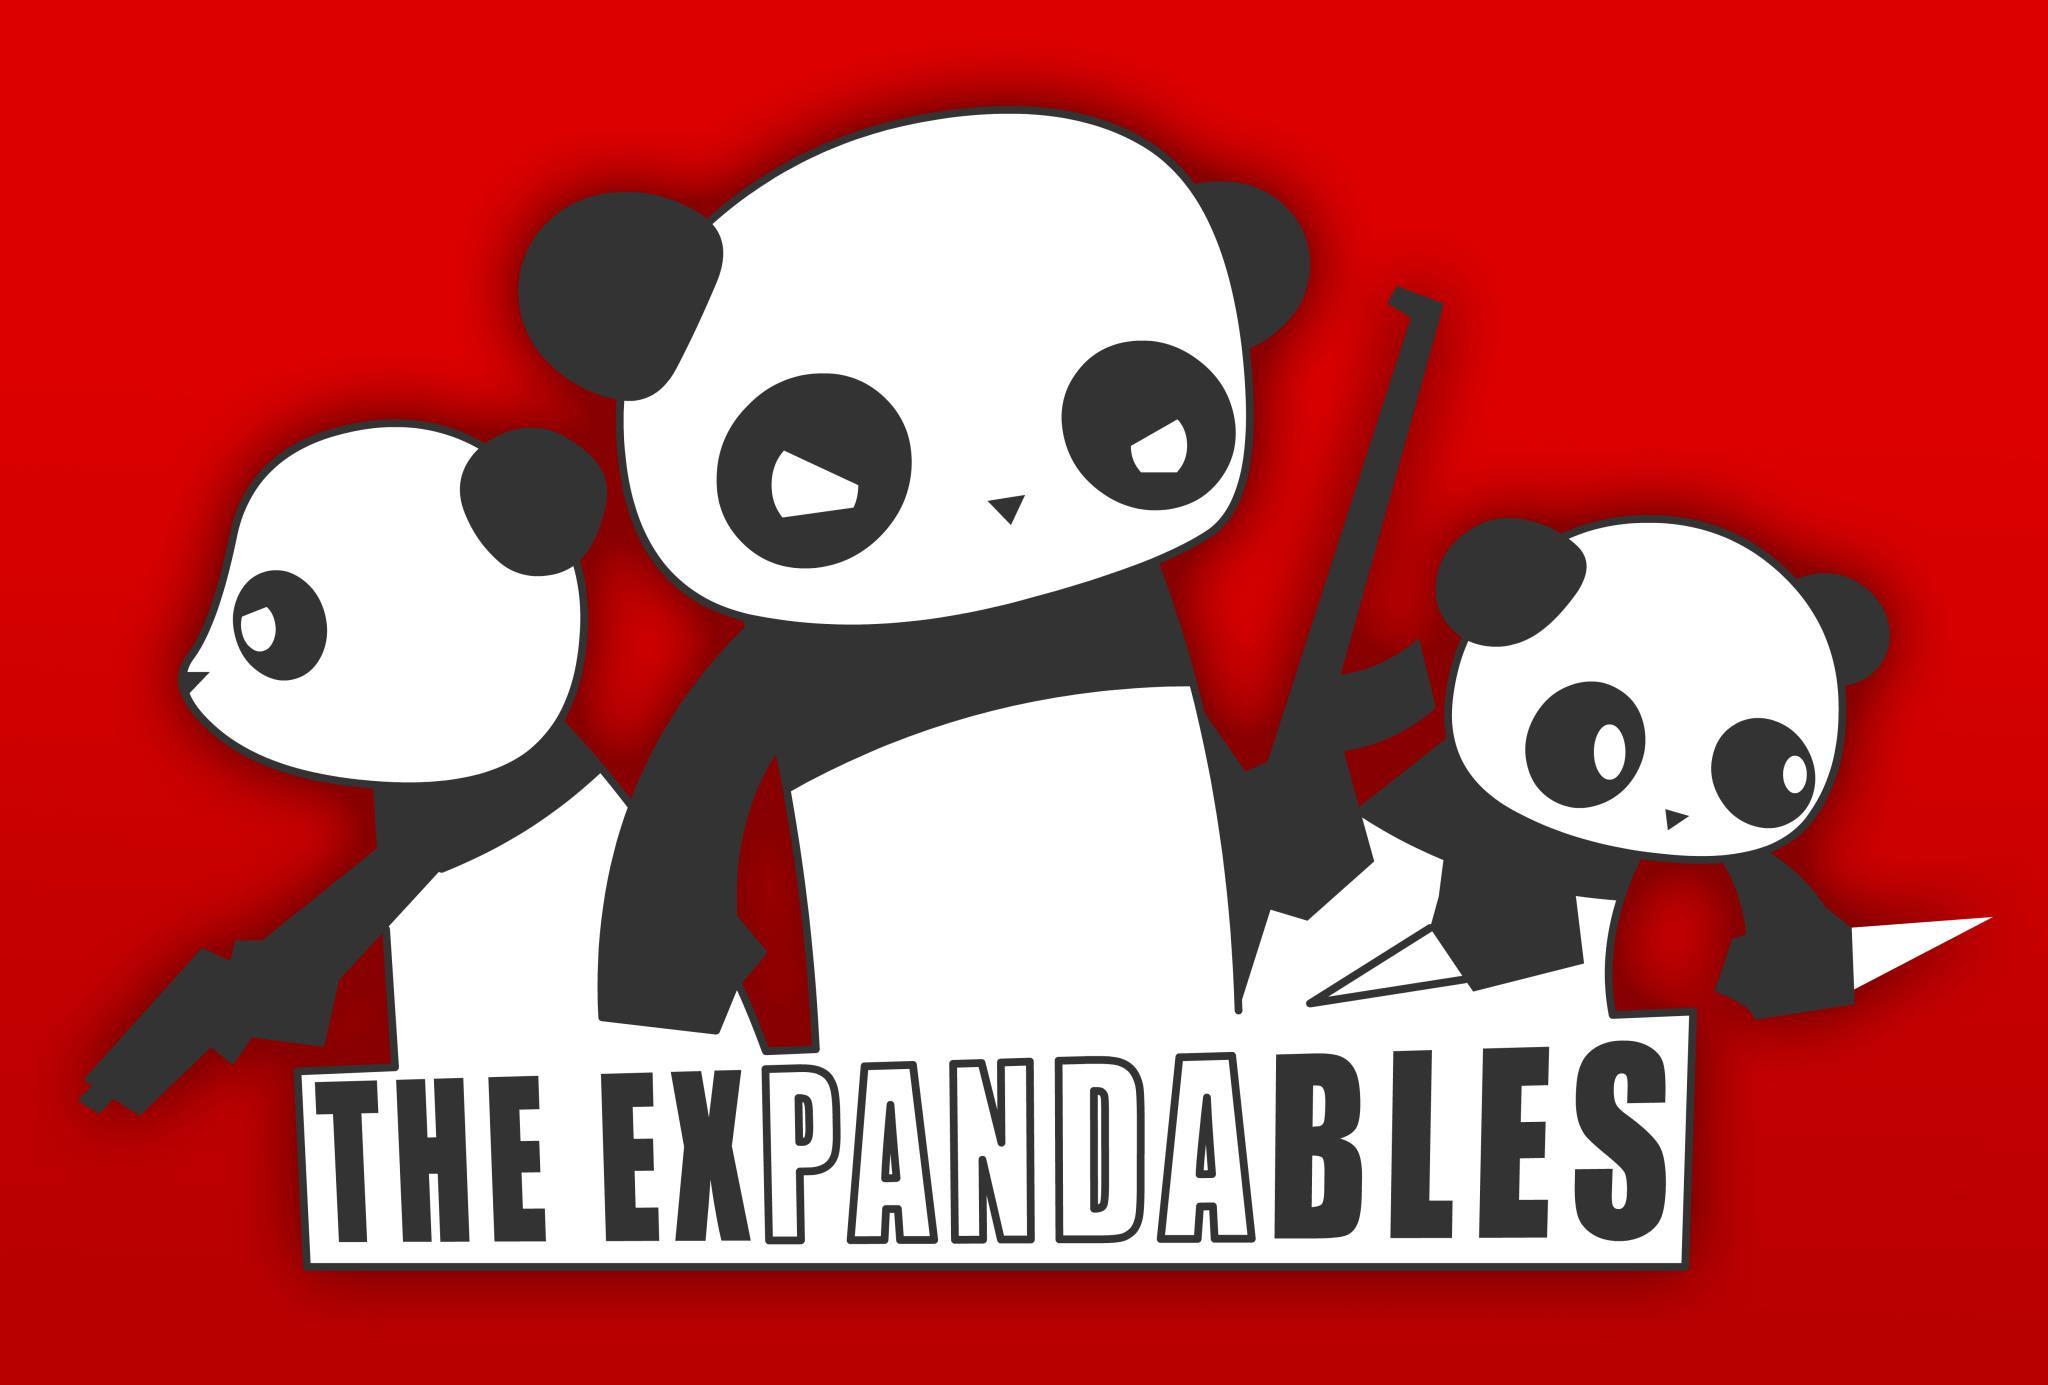 The Expandables